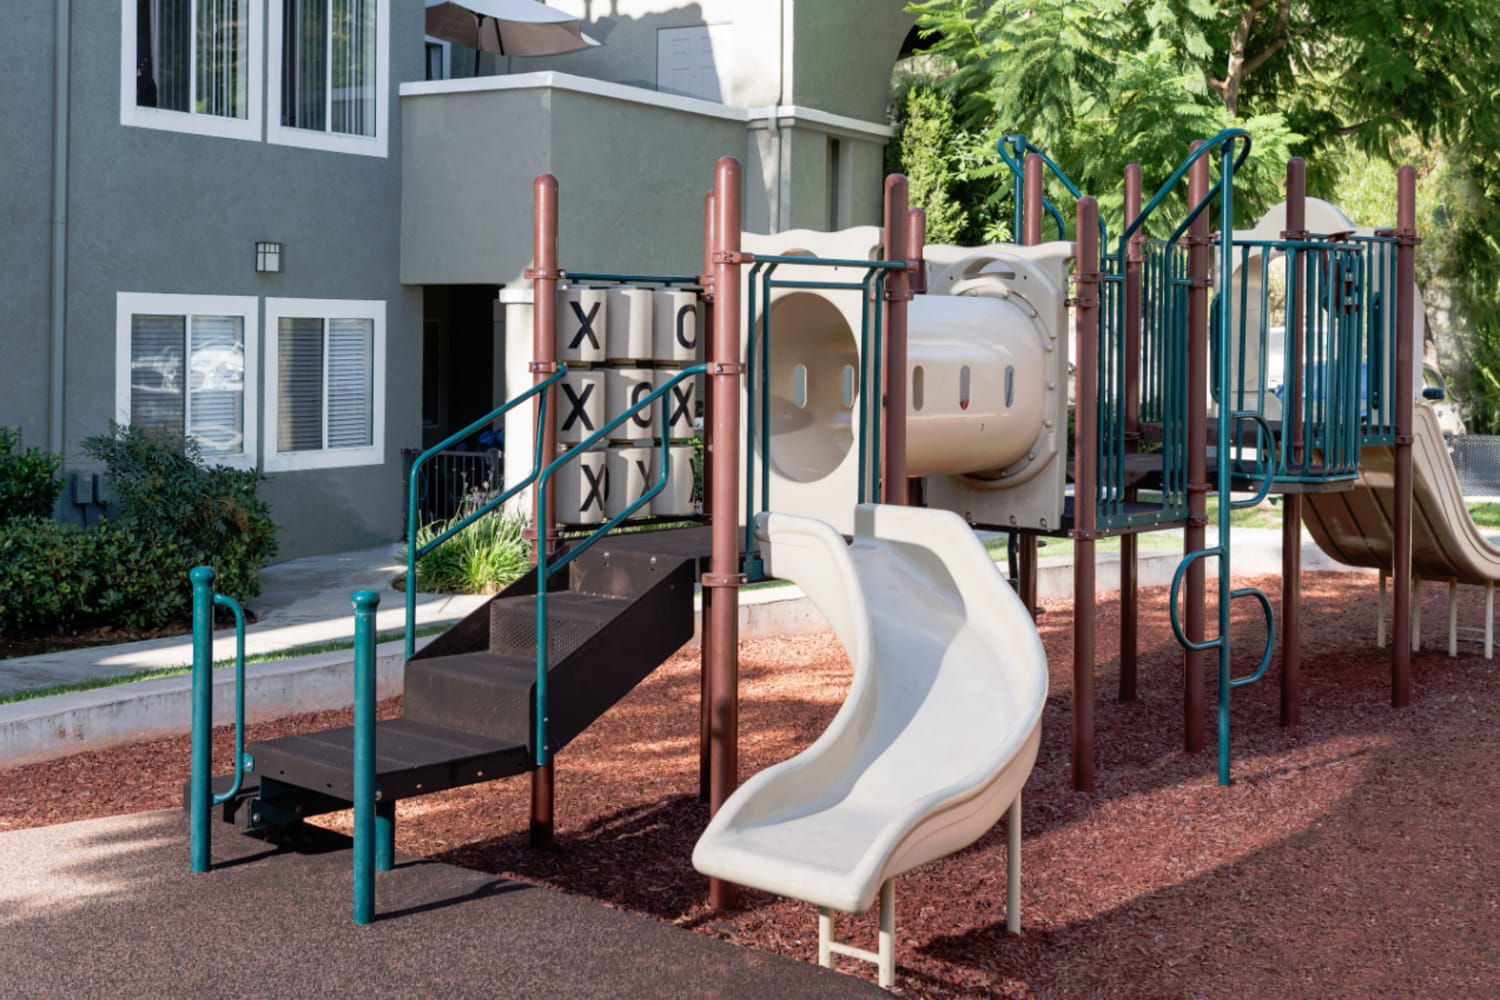 Madrid Apartments in Mission Viejo, California, offer an onsite playground